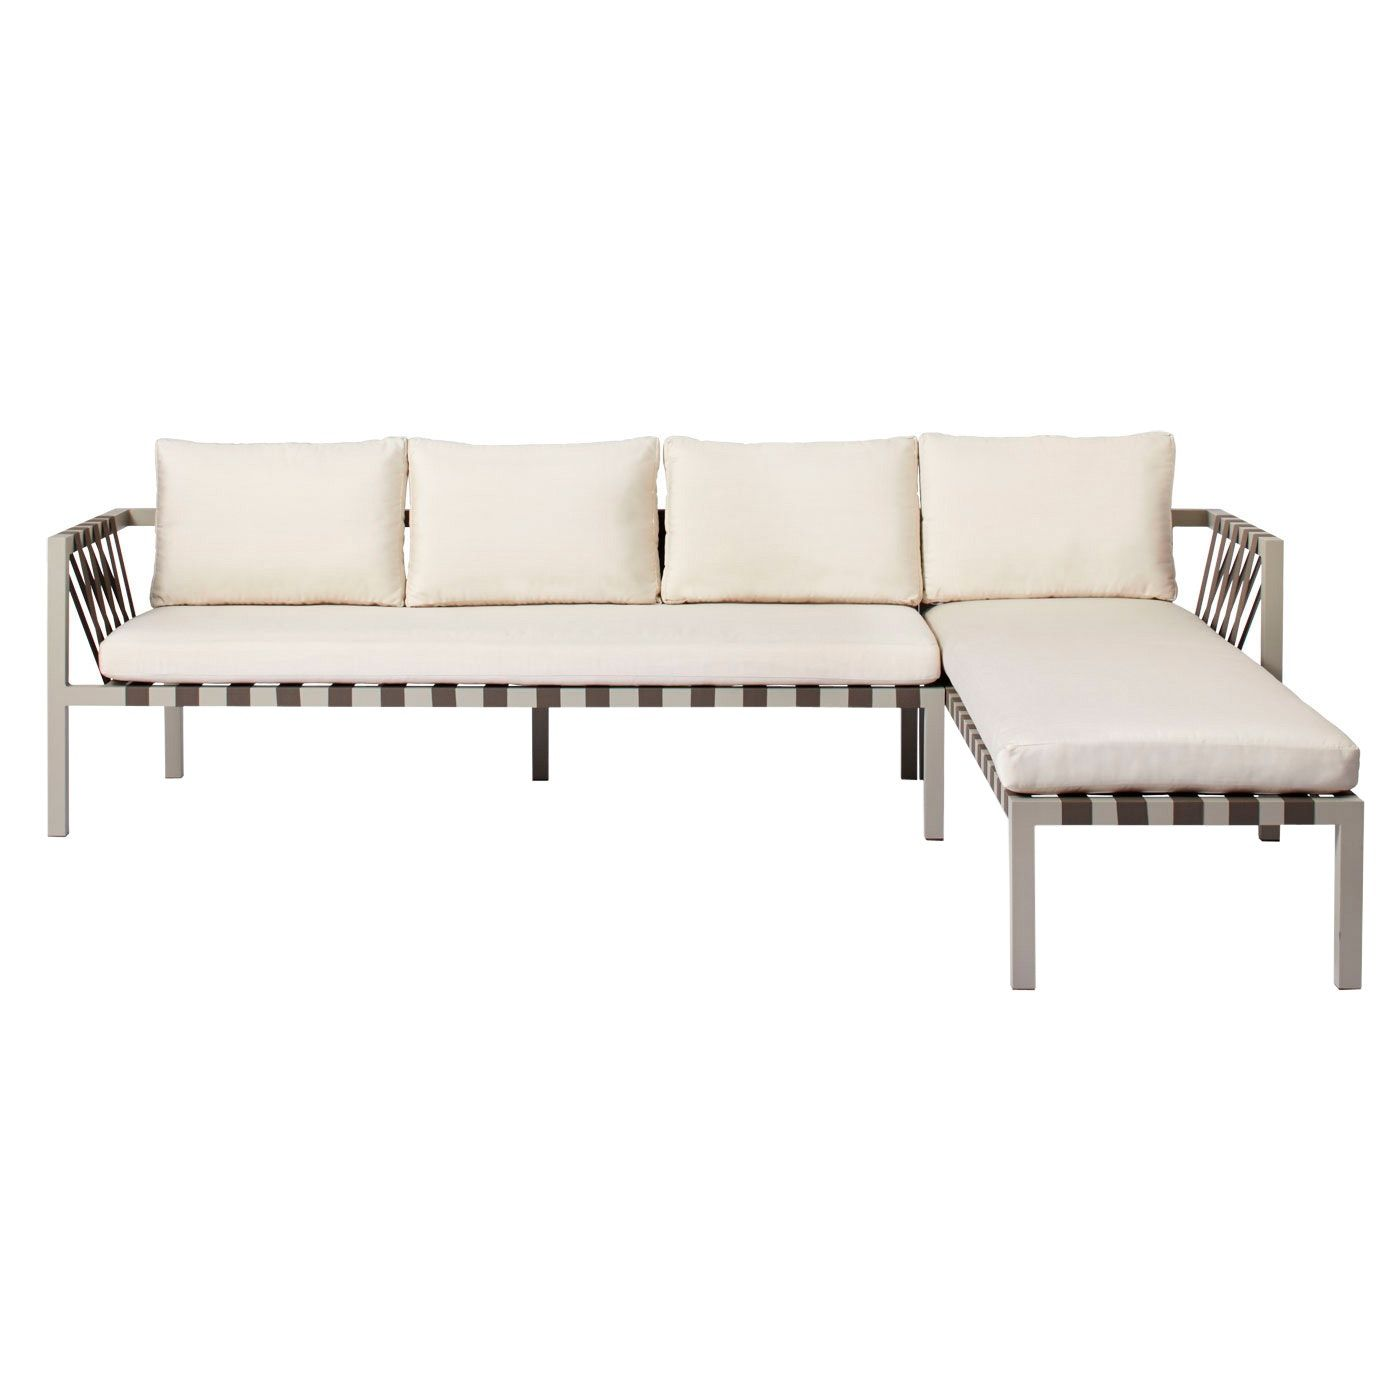 Jibe Outdoor Sectional Sofa Contemporary Mid Century Modern